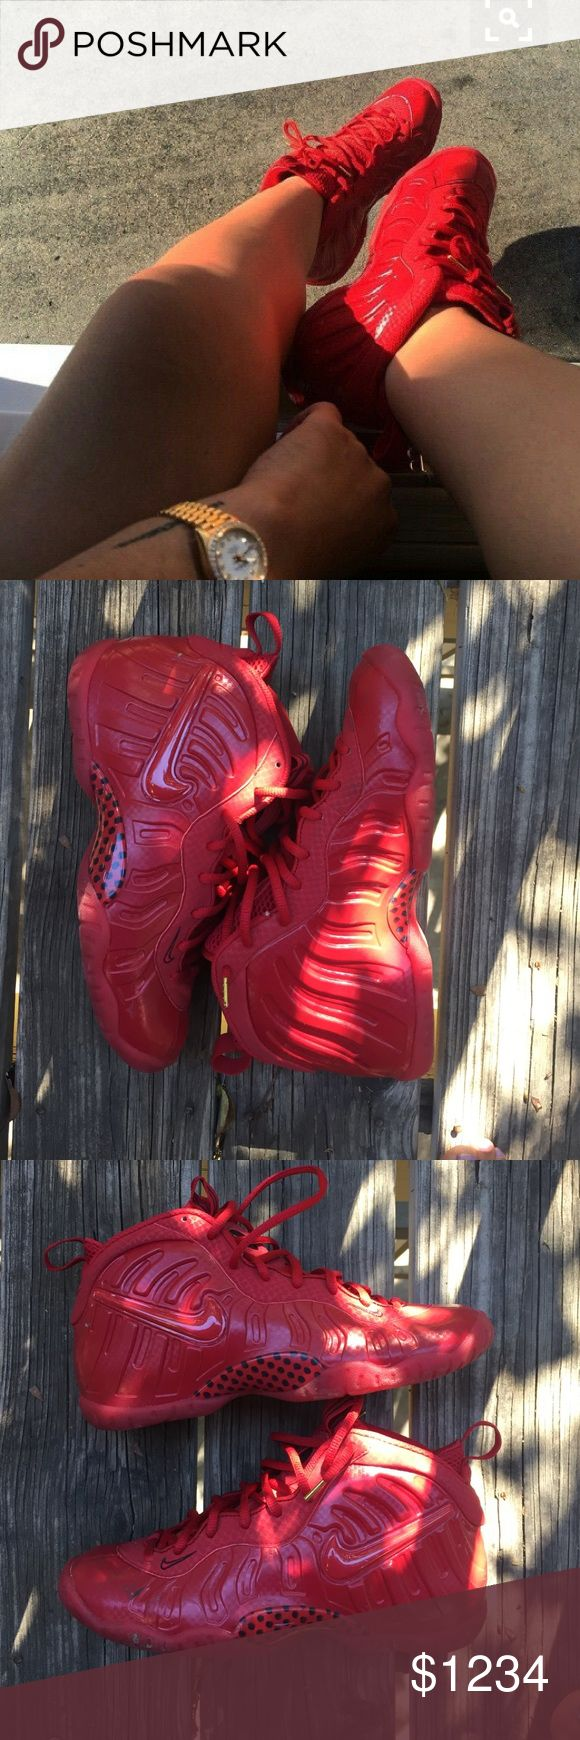 October Red Foamposites Looking to swap, 6.5y fits women's 7.5-8 cash offers welcomed  *disclaimer- cover photo is India love - the rest of photos belong to me ft. My toes lol 100% authentic- I do not wear fake shoes. Bought from footlocker Nike Shoes Sneakers